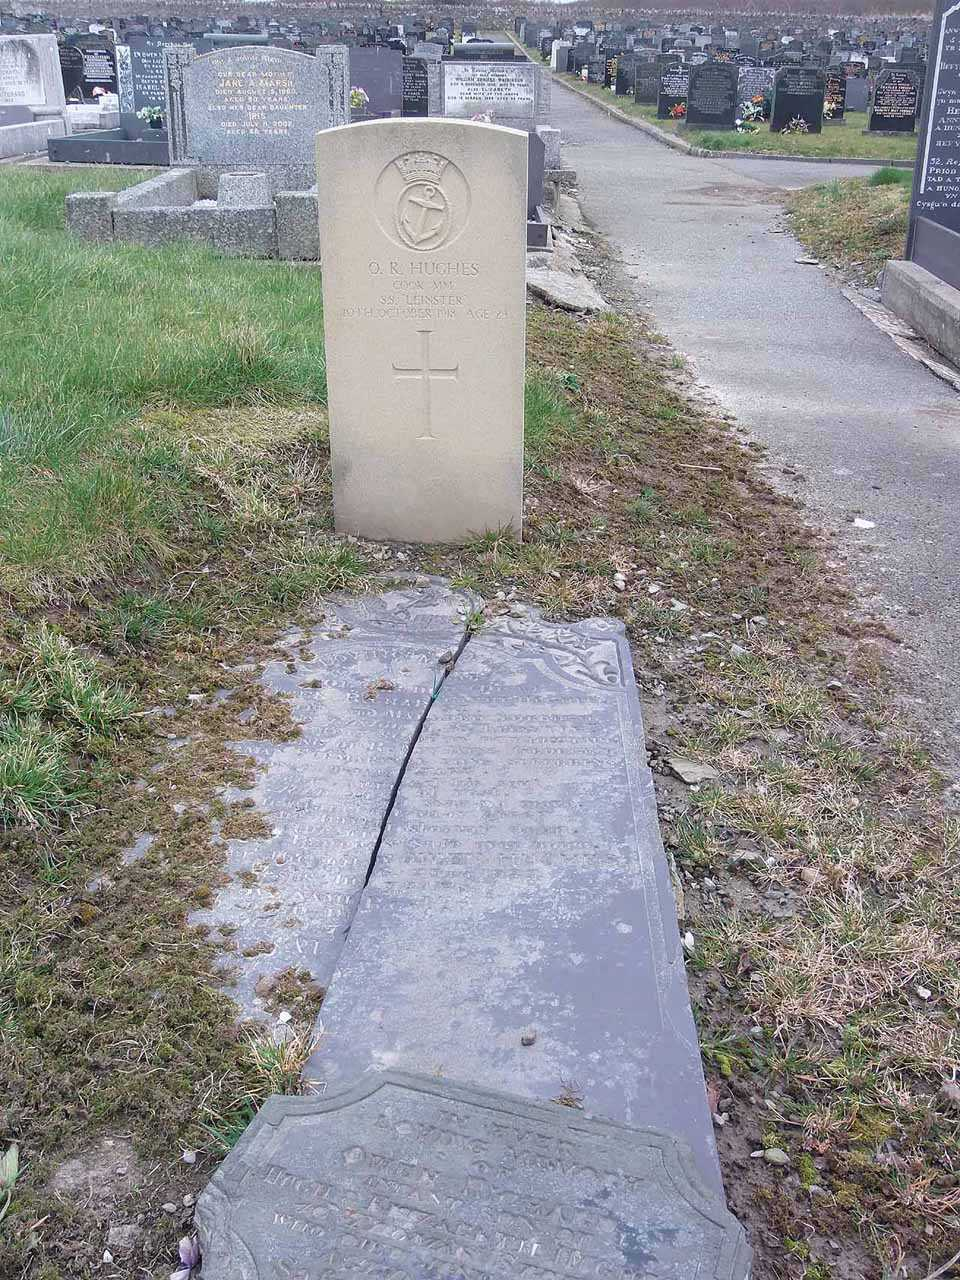 Owen Richard Hughes MM - killed aboard SS Leinster in 1918 aged 29 full photo